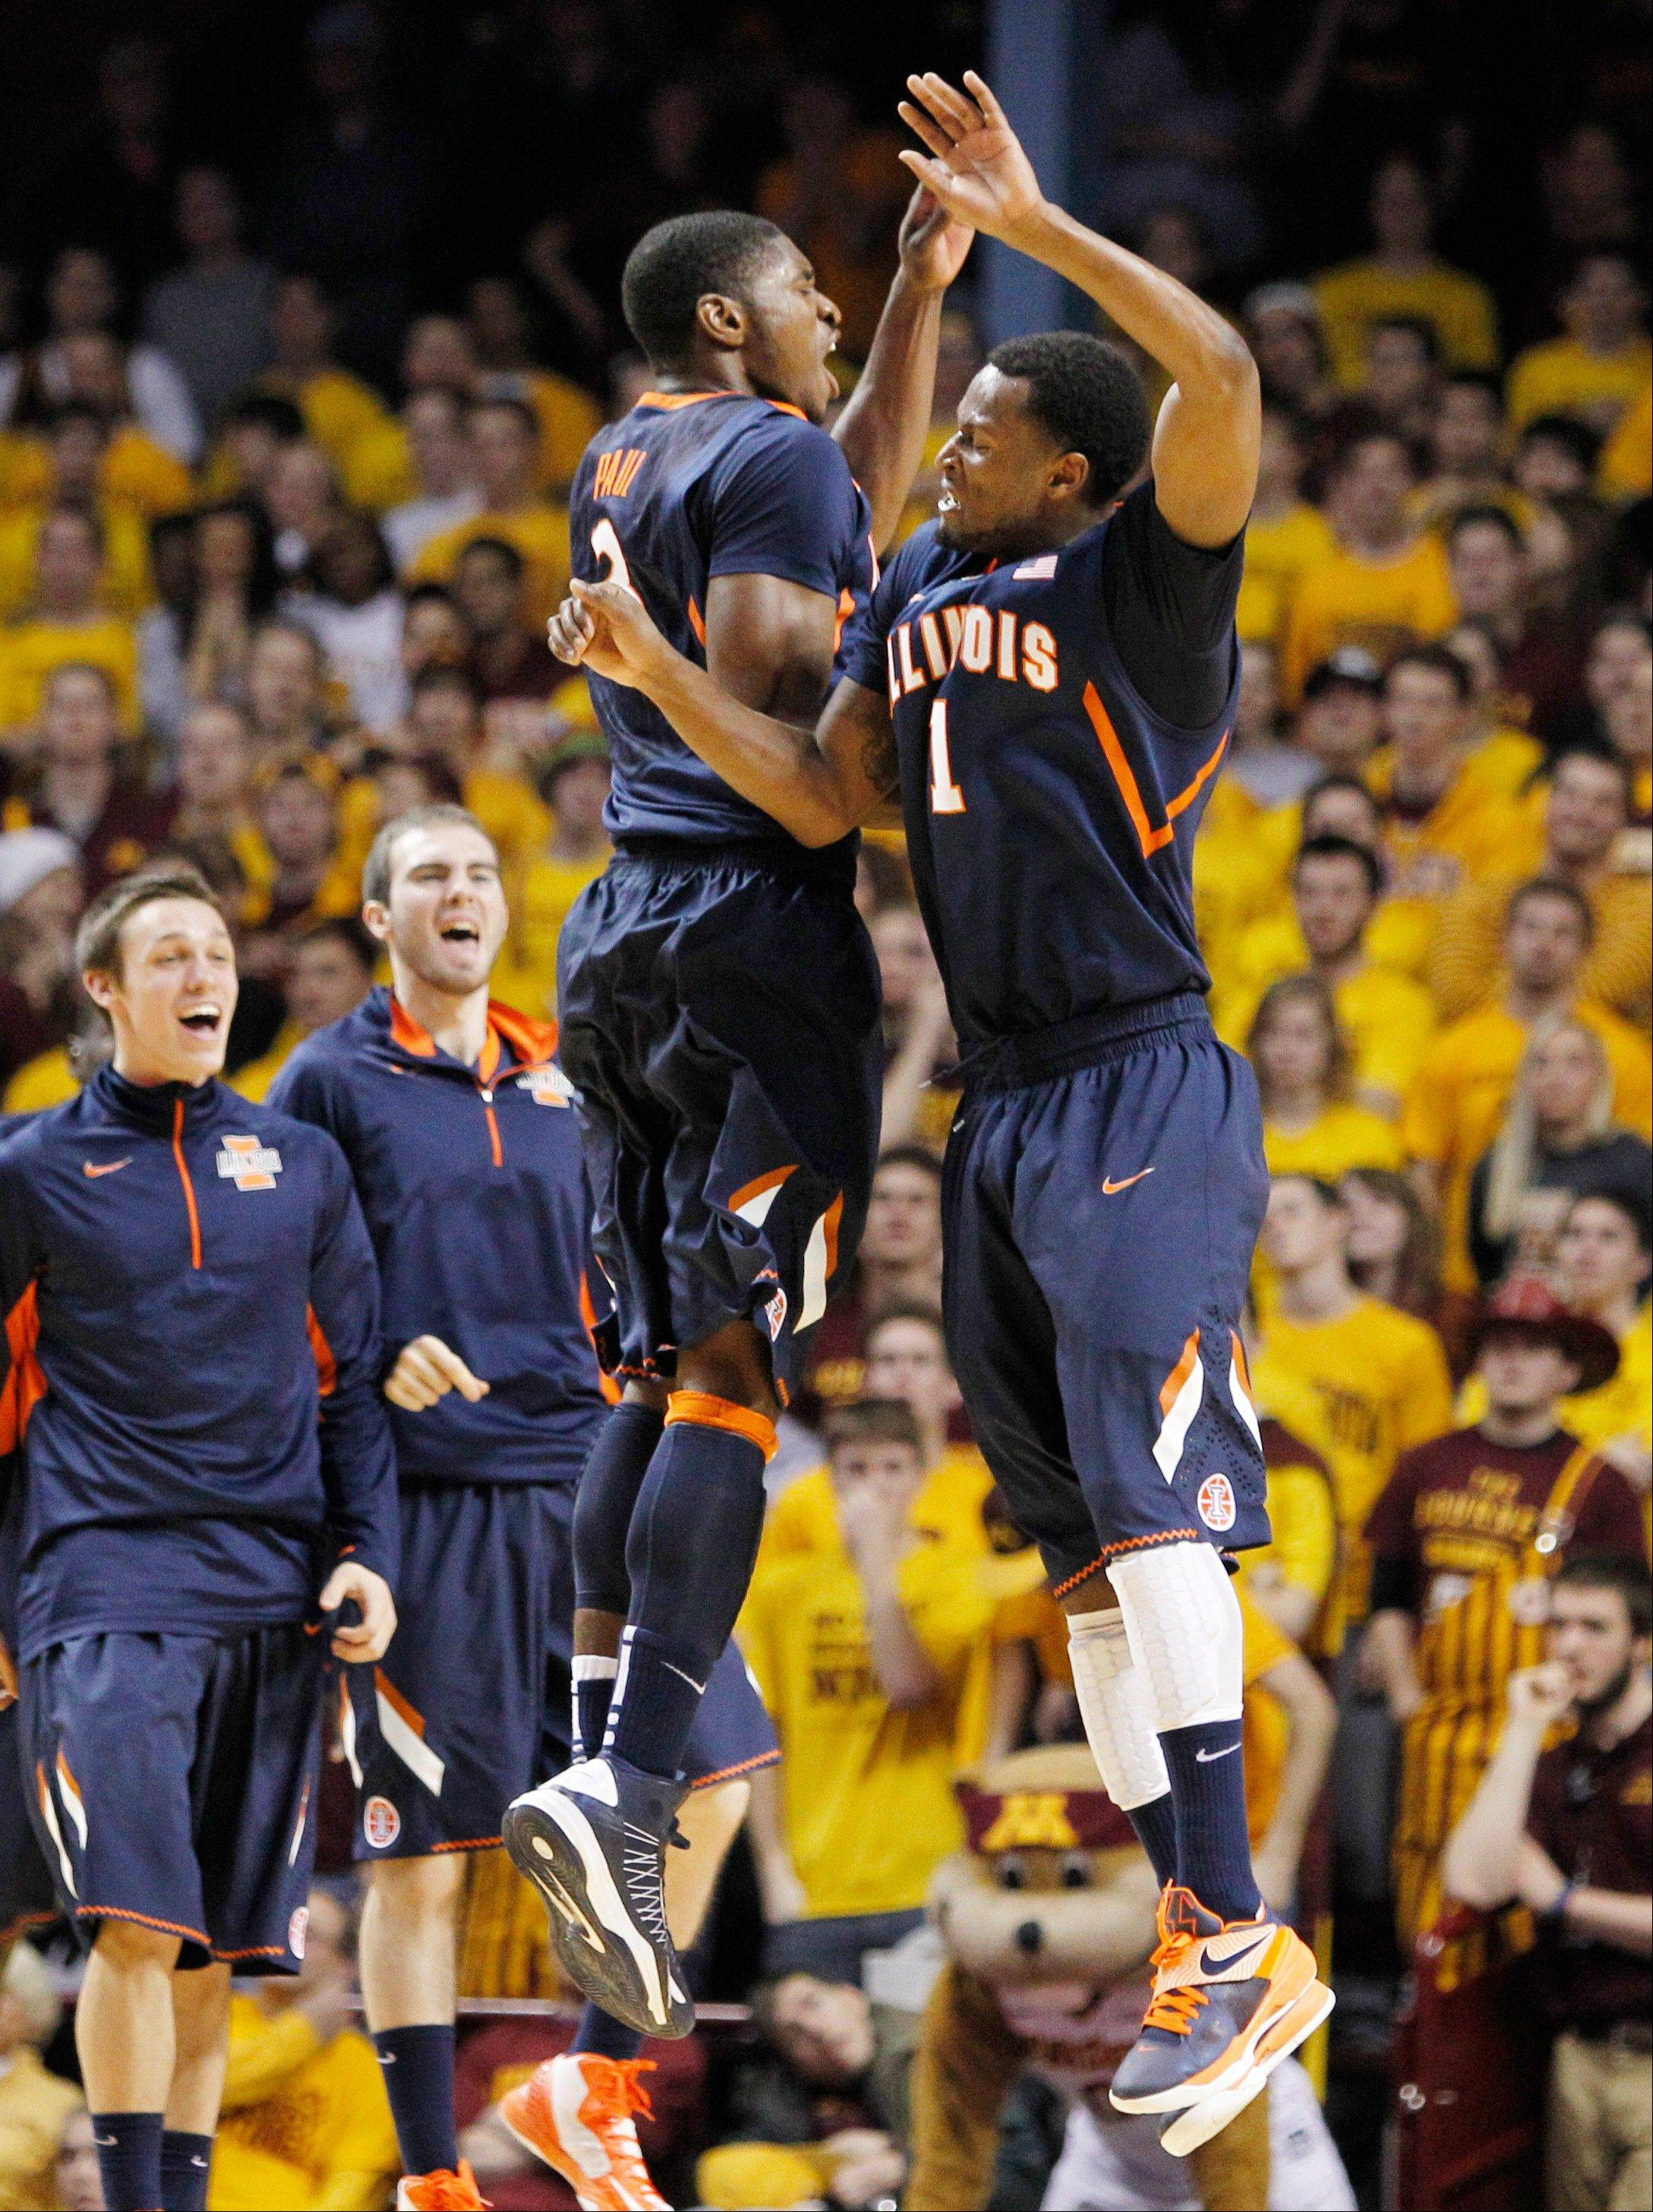 Illinois� D.J. Richardson (1) celebrates with Brandon Paul (3) after Richardson hit a 3-pointer against Minnesota during the first half of an NCAA college basketball game, Sunday, Feb. 10, 2013, in Minneapolis.